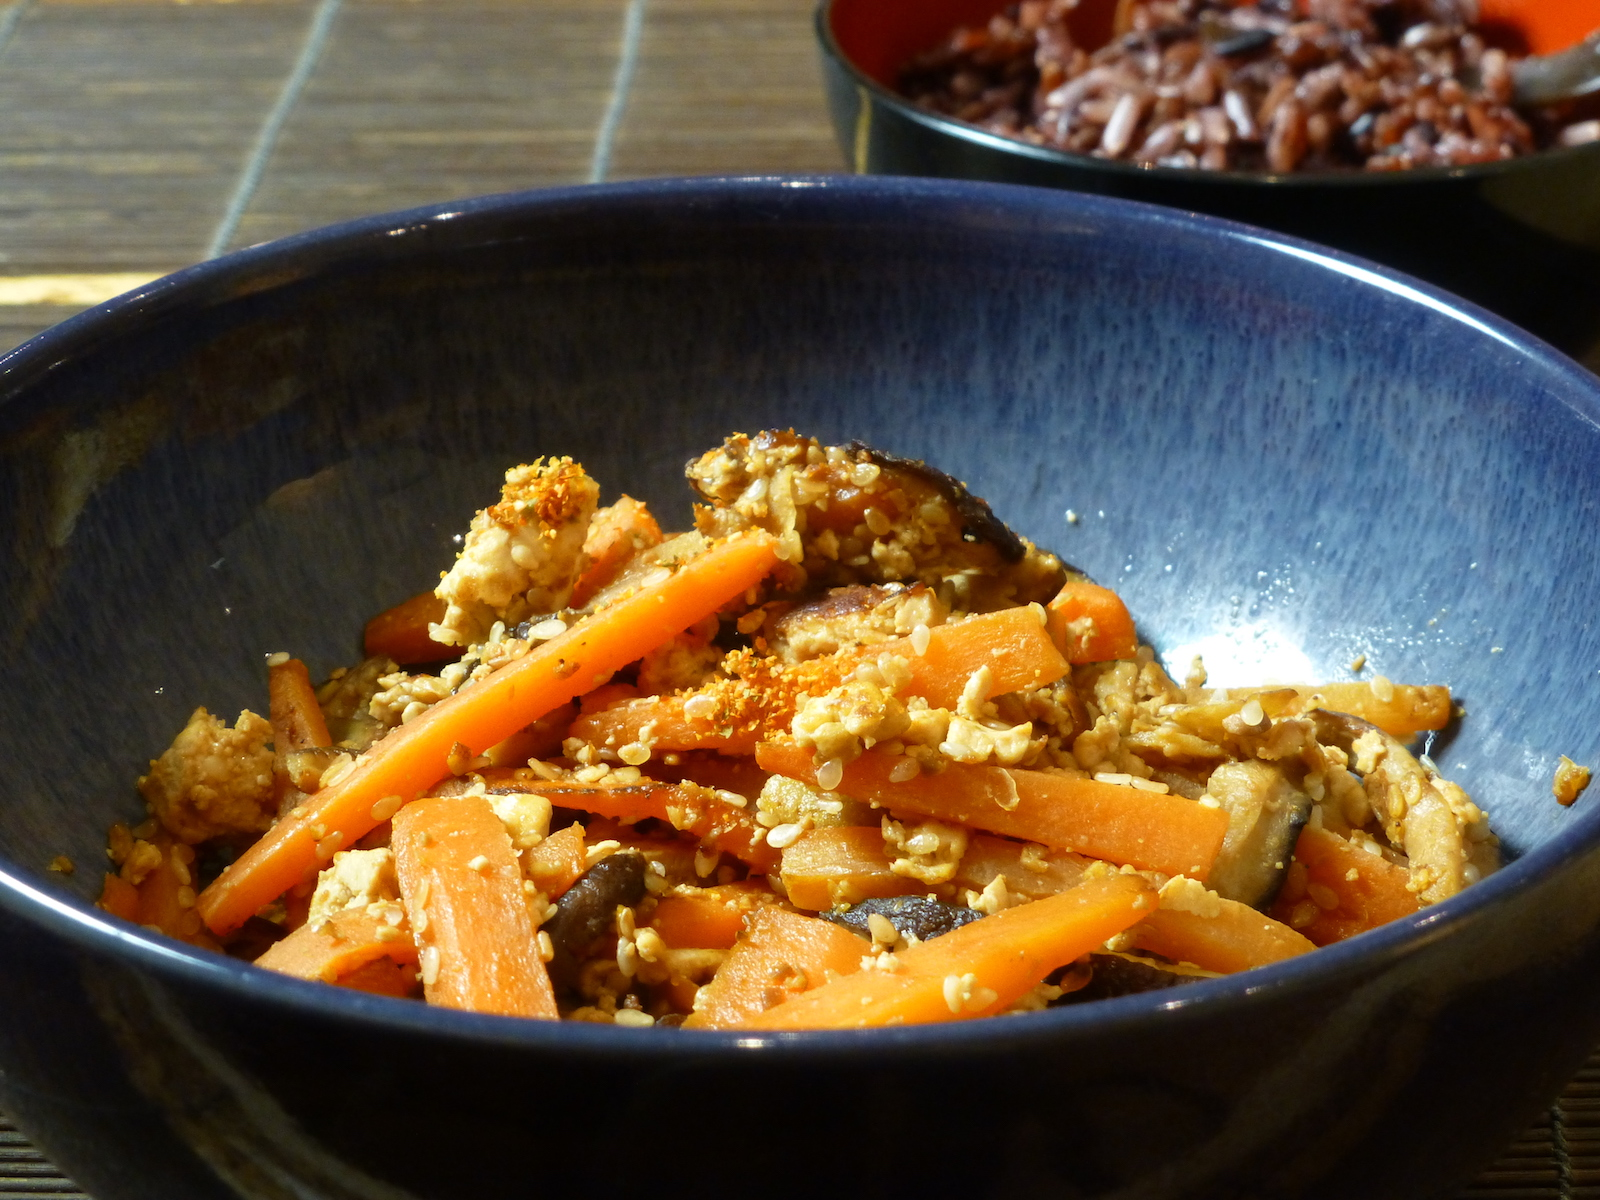 Iridofu with carrots and shiitake